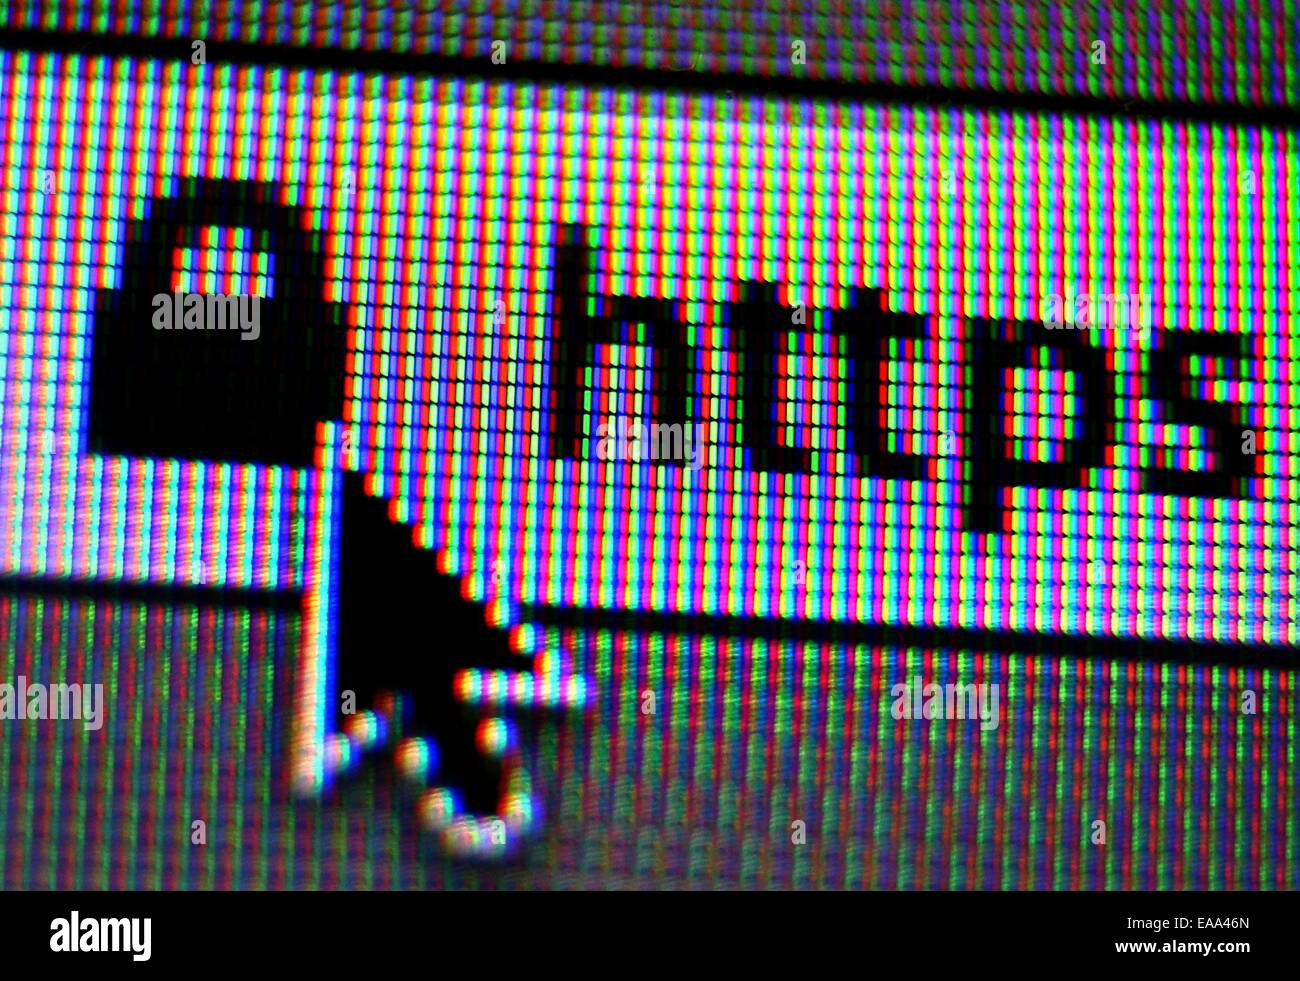 Kaufbeuren, Germany. 09th Nov, 2014. The abbreviation https (hypertext transfer protocol secure) on a computer browser - Stock Image